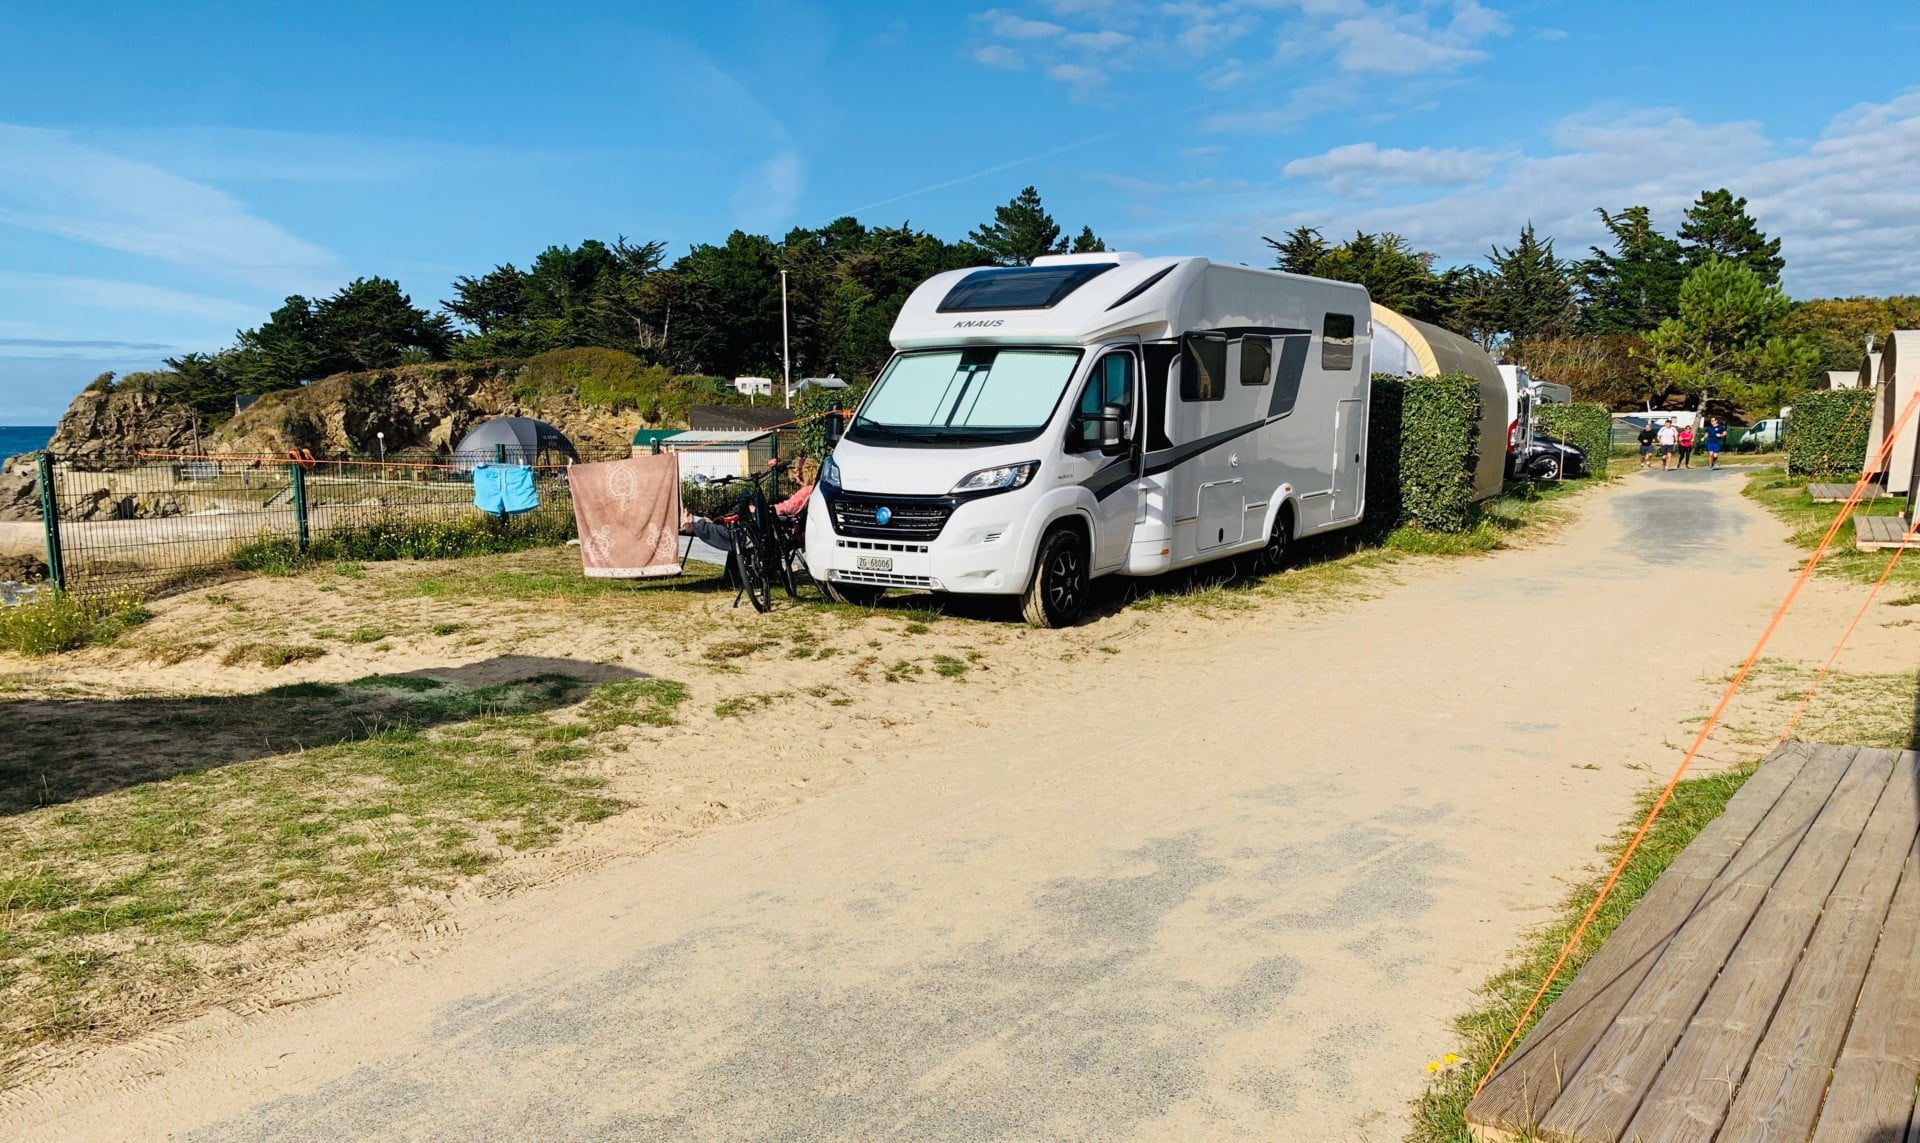 camping-car-sable-soleil-emplacement-pitch